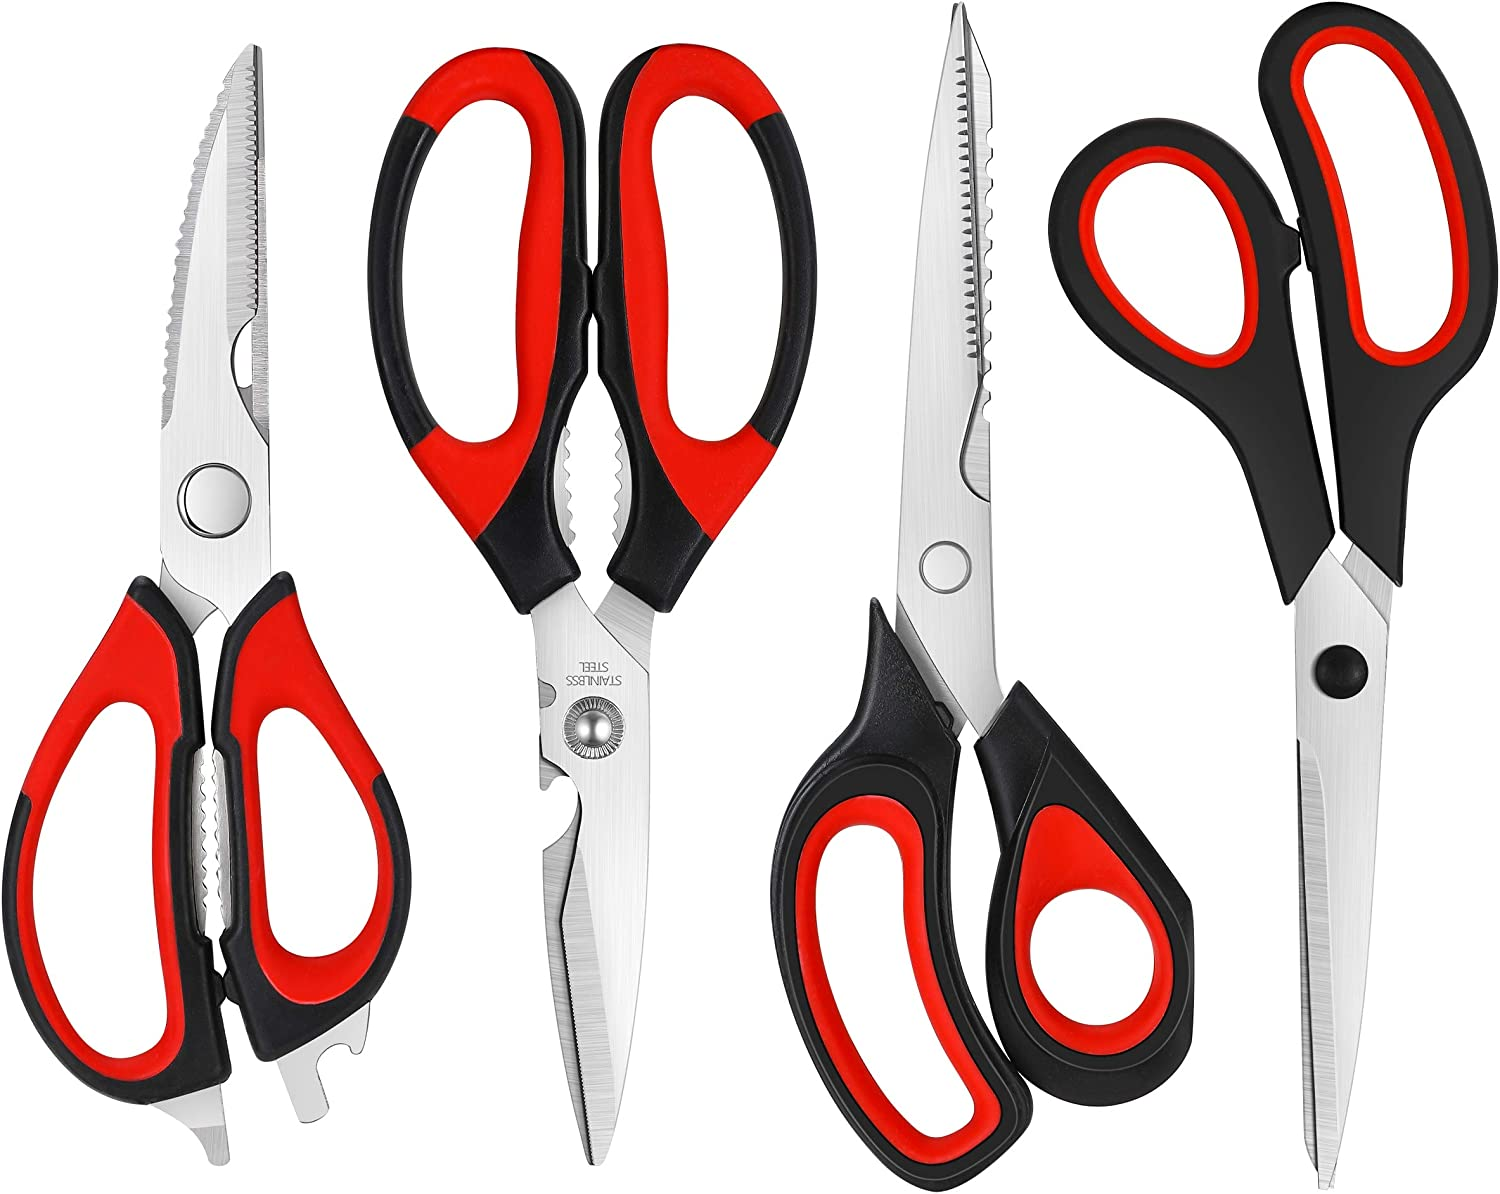 Kitchen Scissors, 4 pack Kitchen Shears,Heavy Duty Dishwasher Safe Food Scissors, Multipurpose Stainless Steel Sharp Cooking Scissors for Kitchen, Chicken, Poultry, Fish, Meat, Herbs (Red and Black)